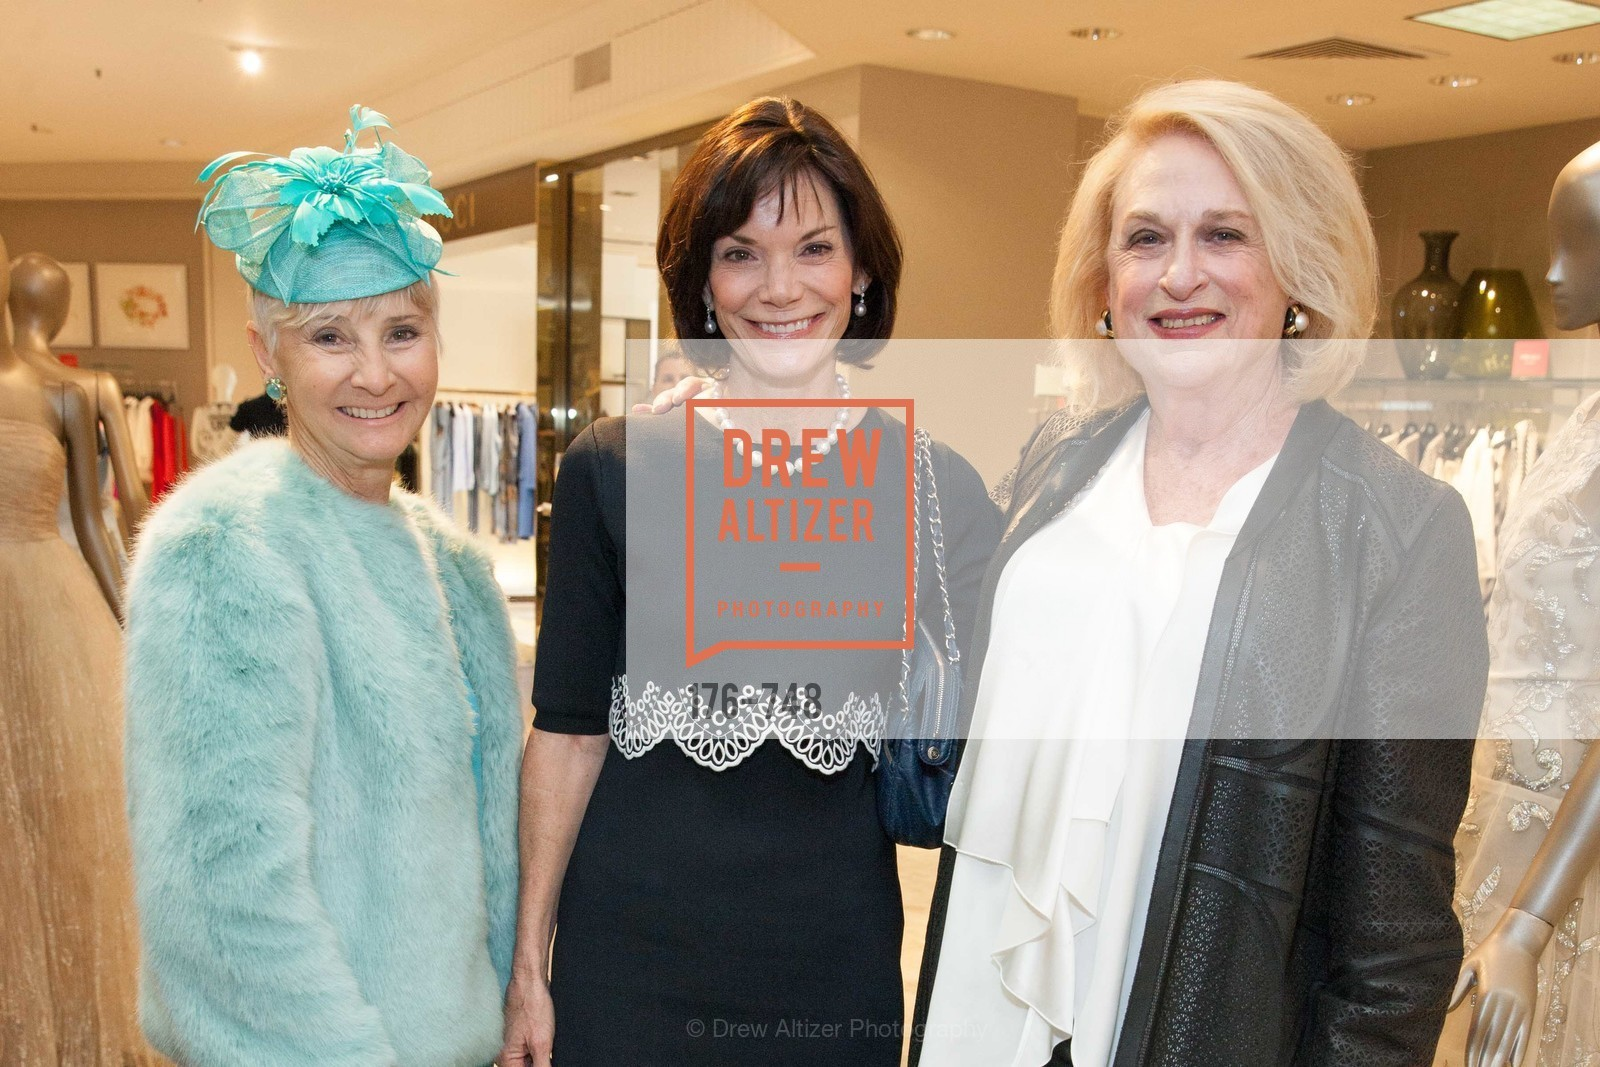 Gail Glasser, Lisa Mooring, Sally Debenham, PETER COPPING'S Personal Appearance at SAKS FIFTH AVENUE, US, May 22nd, 2015,Drew Altizer, Drew Altizer Photography, full-service agency, private events, San Francisco photographer, photographer california